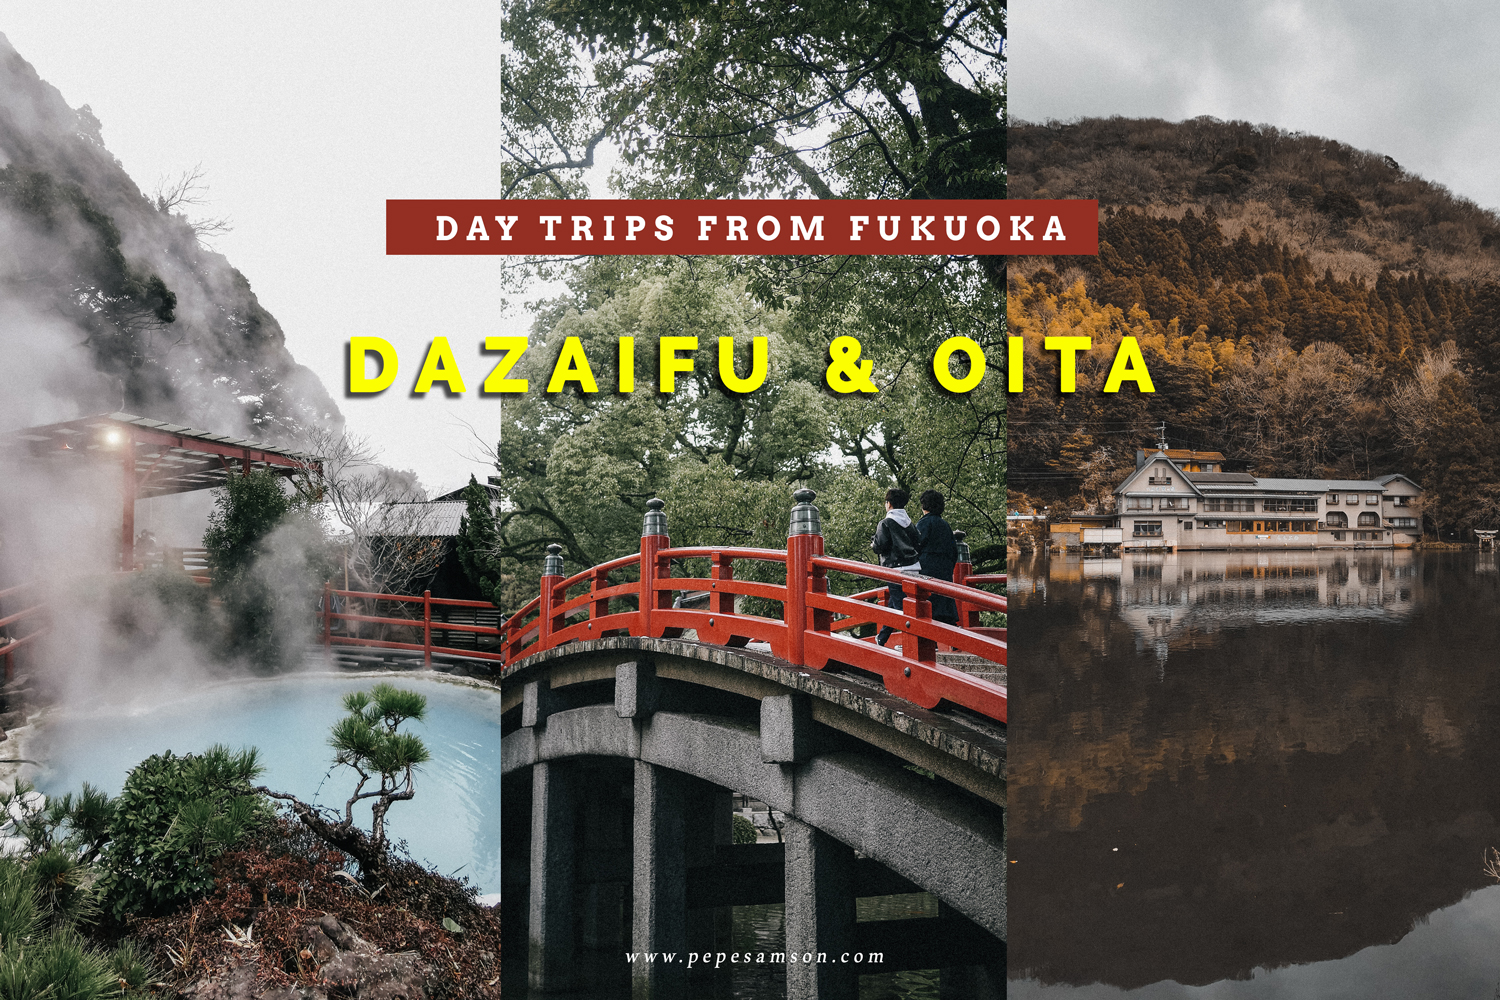 Dazaifu and Oita Day Tour from Fukuoka (Plus My First Onsen Experience!)